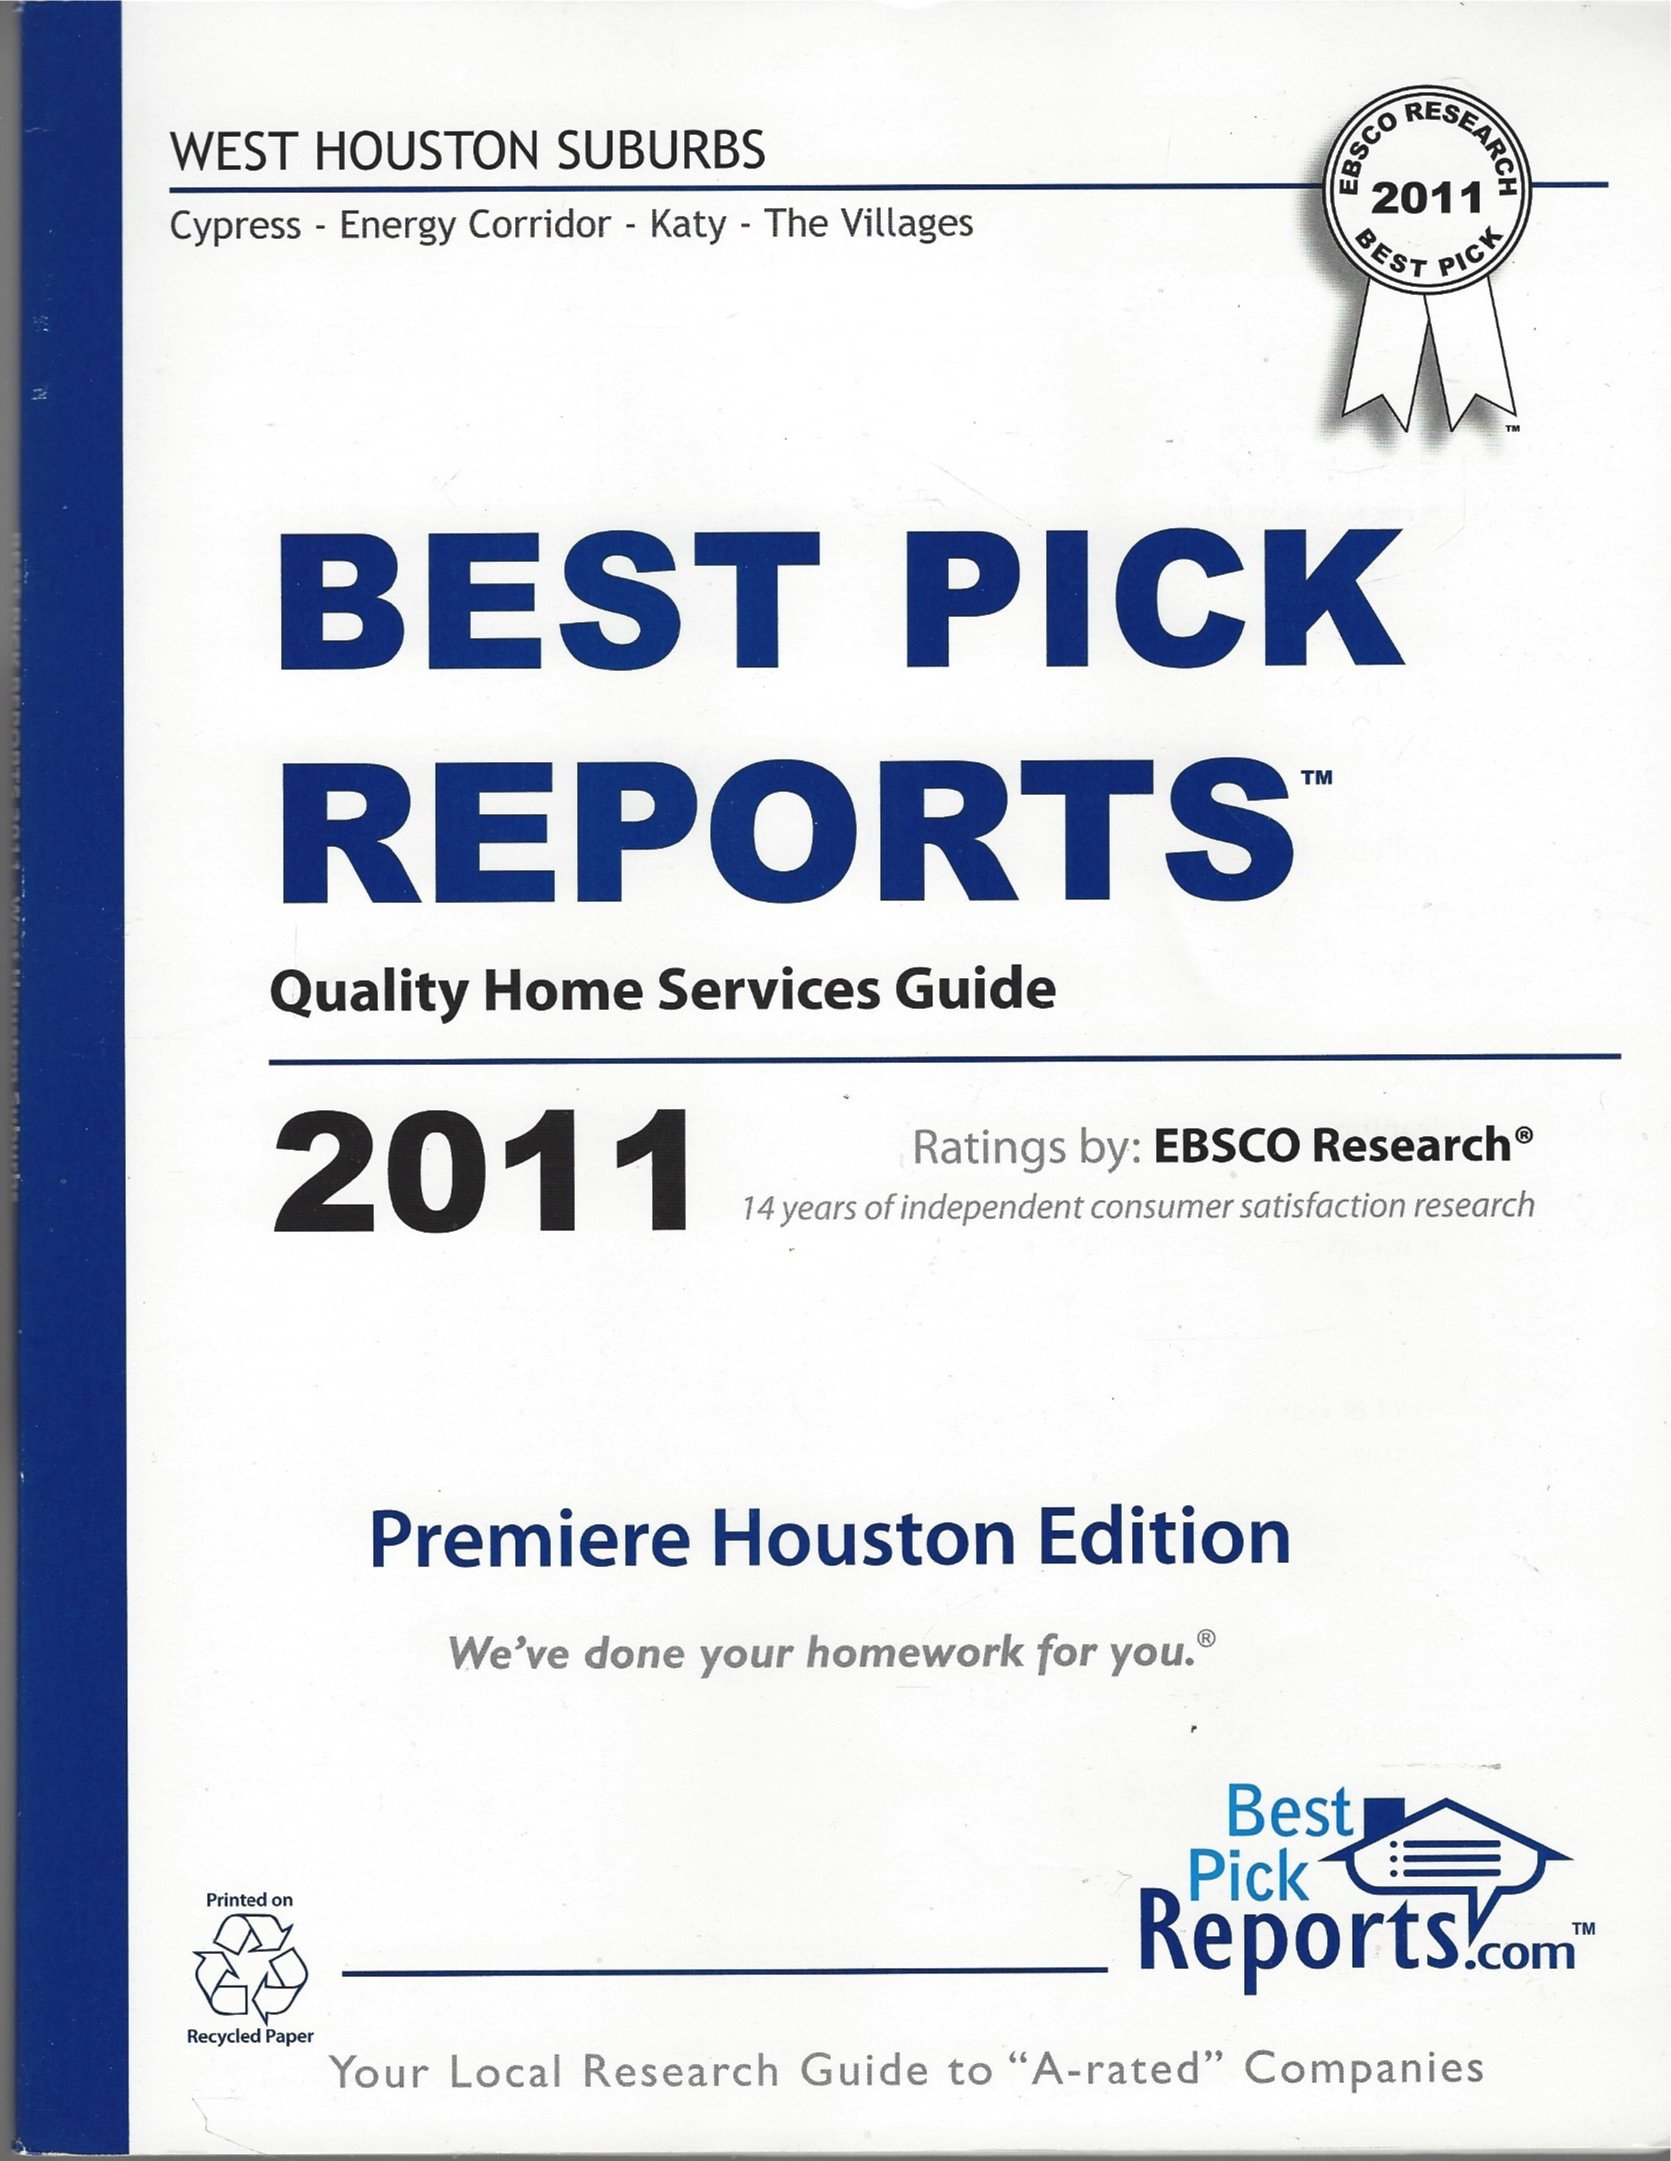 Best Pick Reports Quality Home Services West Houston Suburbs Guide 2011 pdf